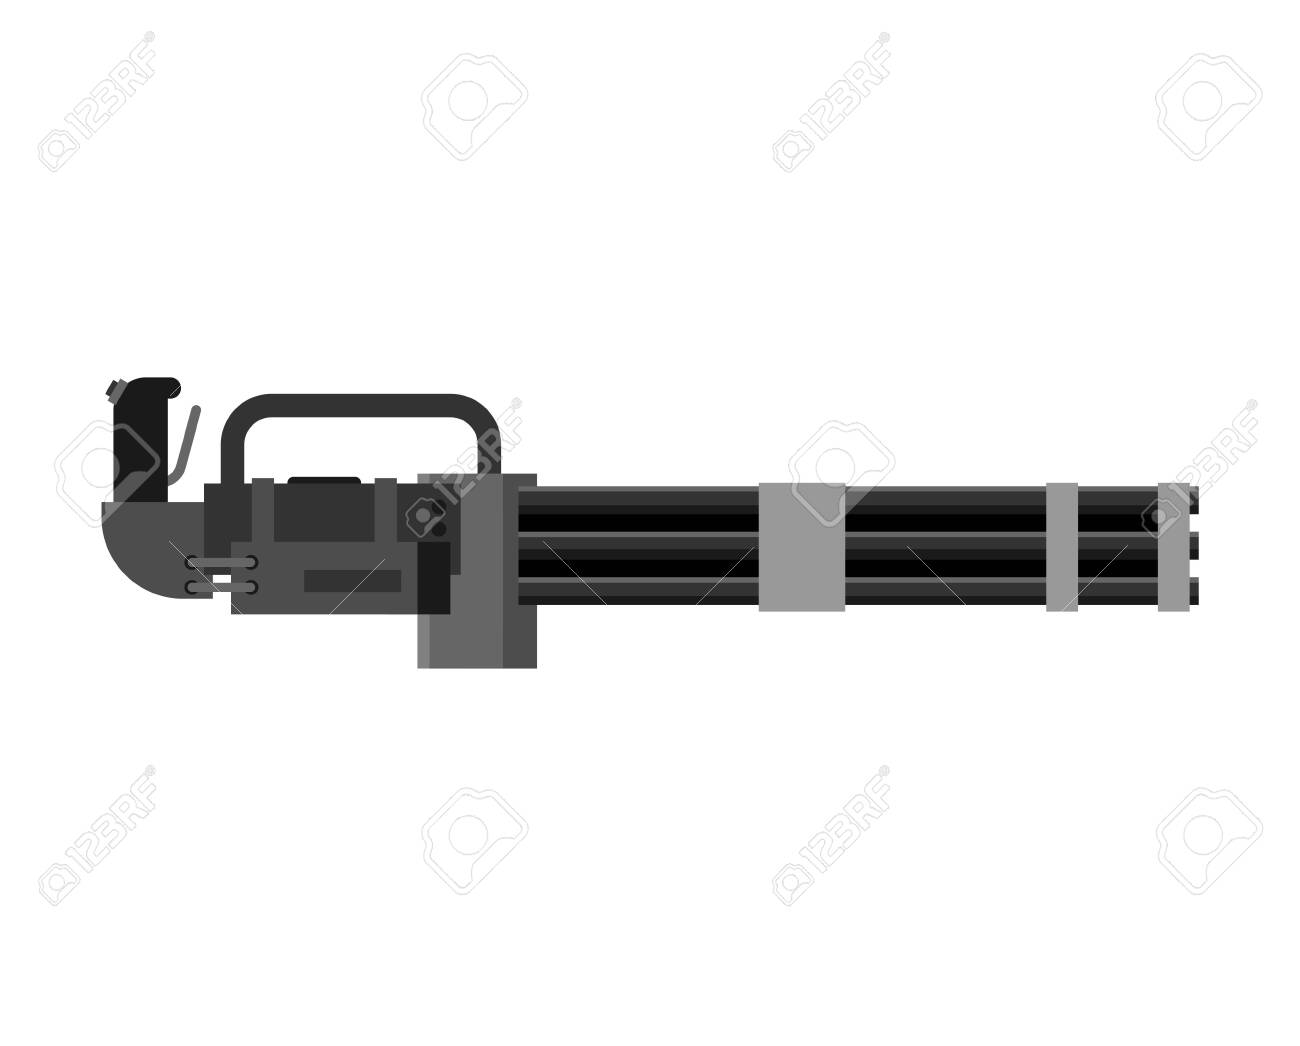 Minigun Machine Gun Isolated Gattling Weapon Automatic